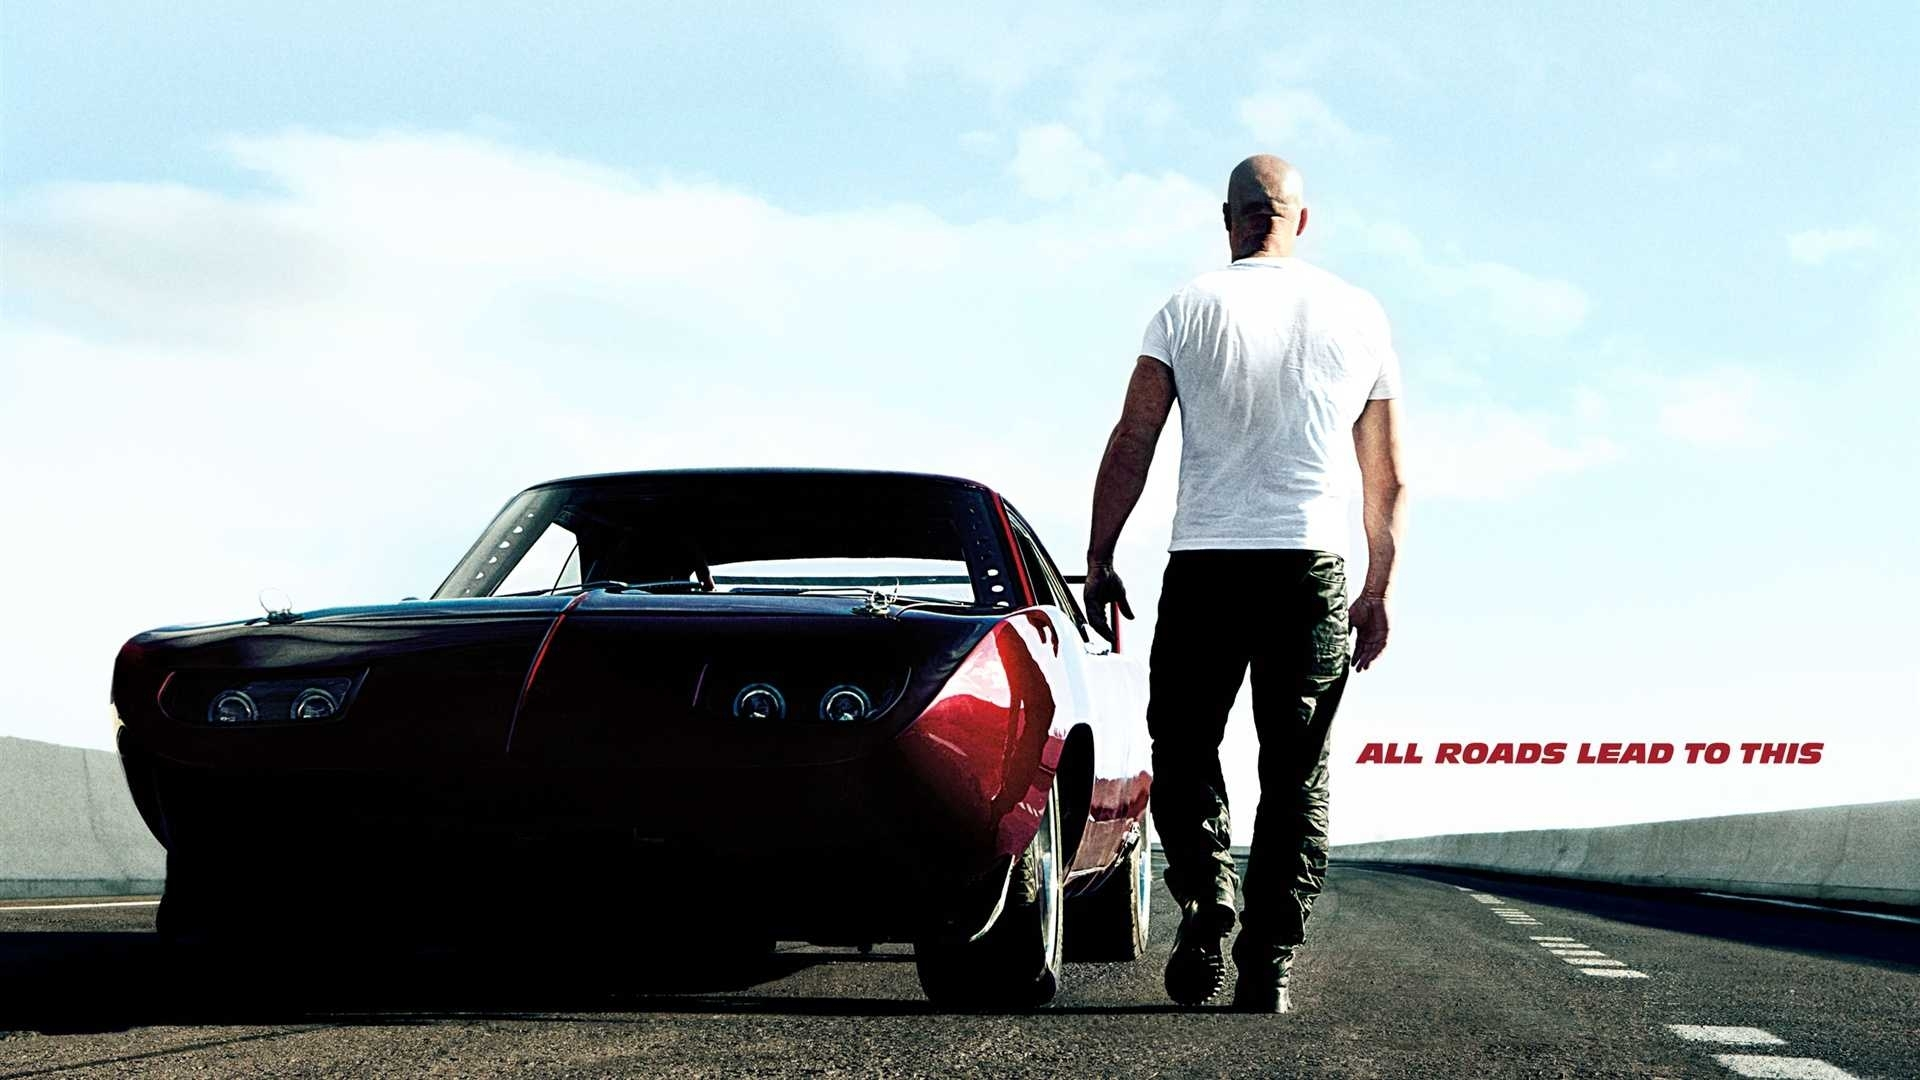 fast and furious quote hd wallpaper high quality 7 of mobile phones